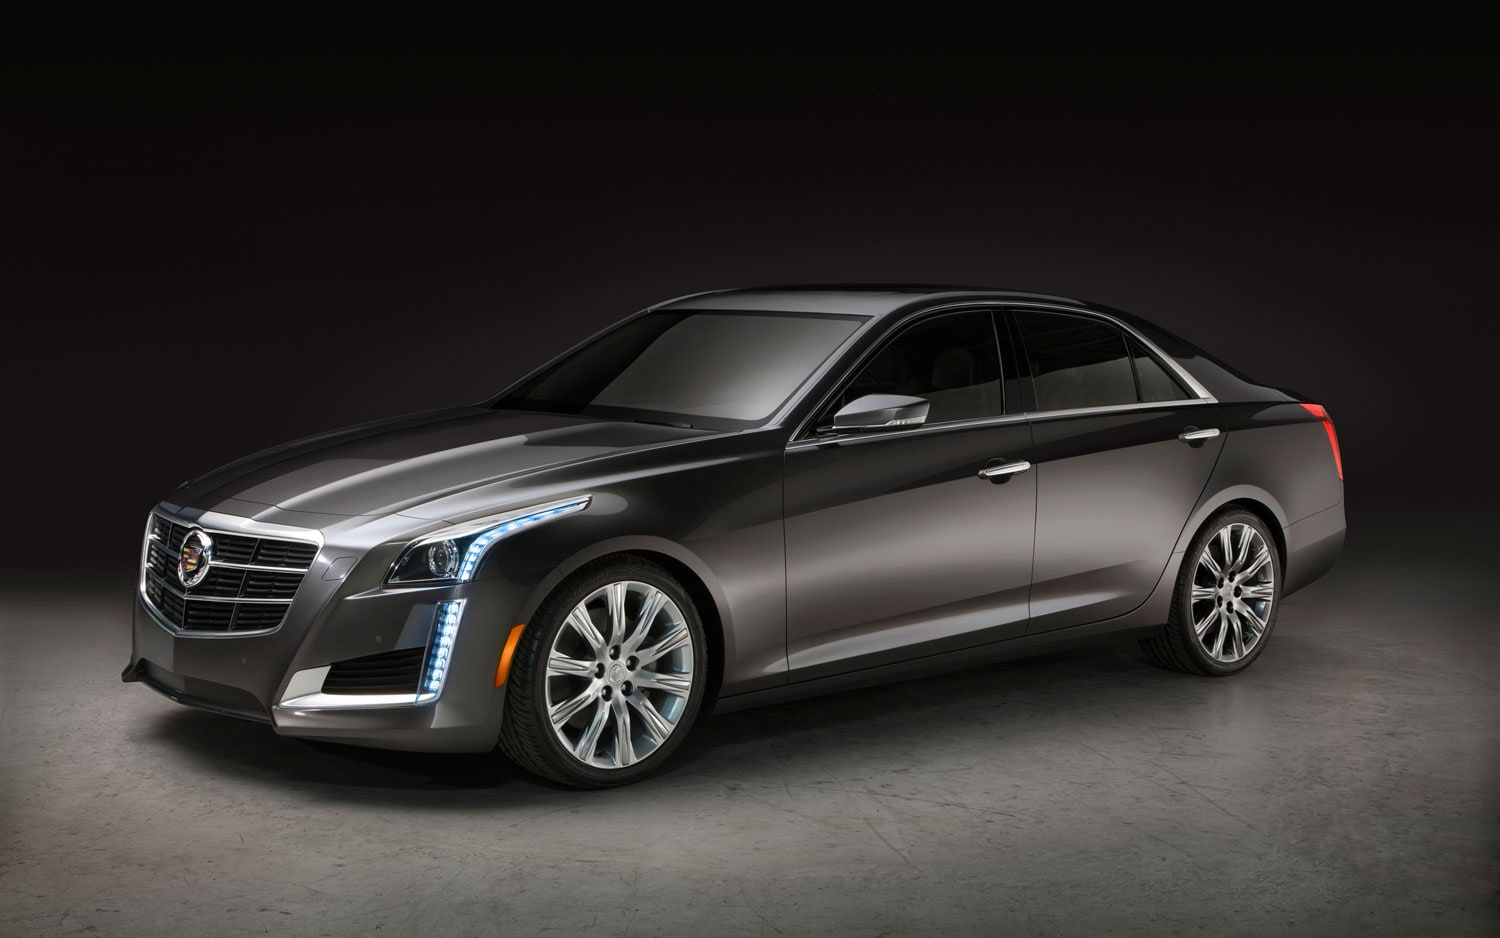 new luxury car releases 2014Luxury Auto Mall of Sioux Falls  2014 Cadillac CTS coming soon to